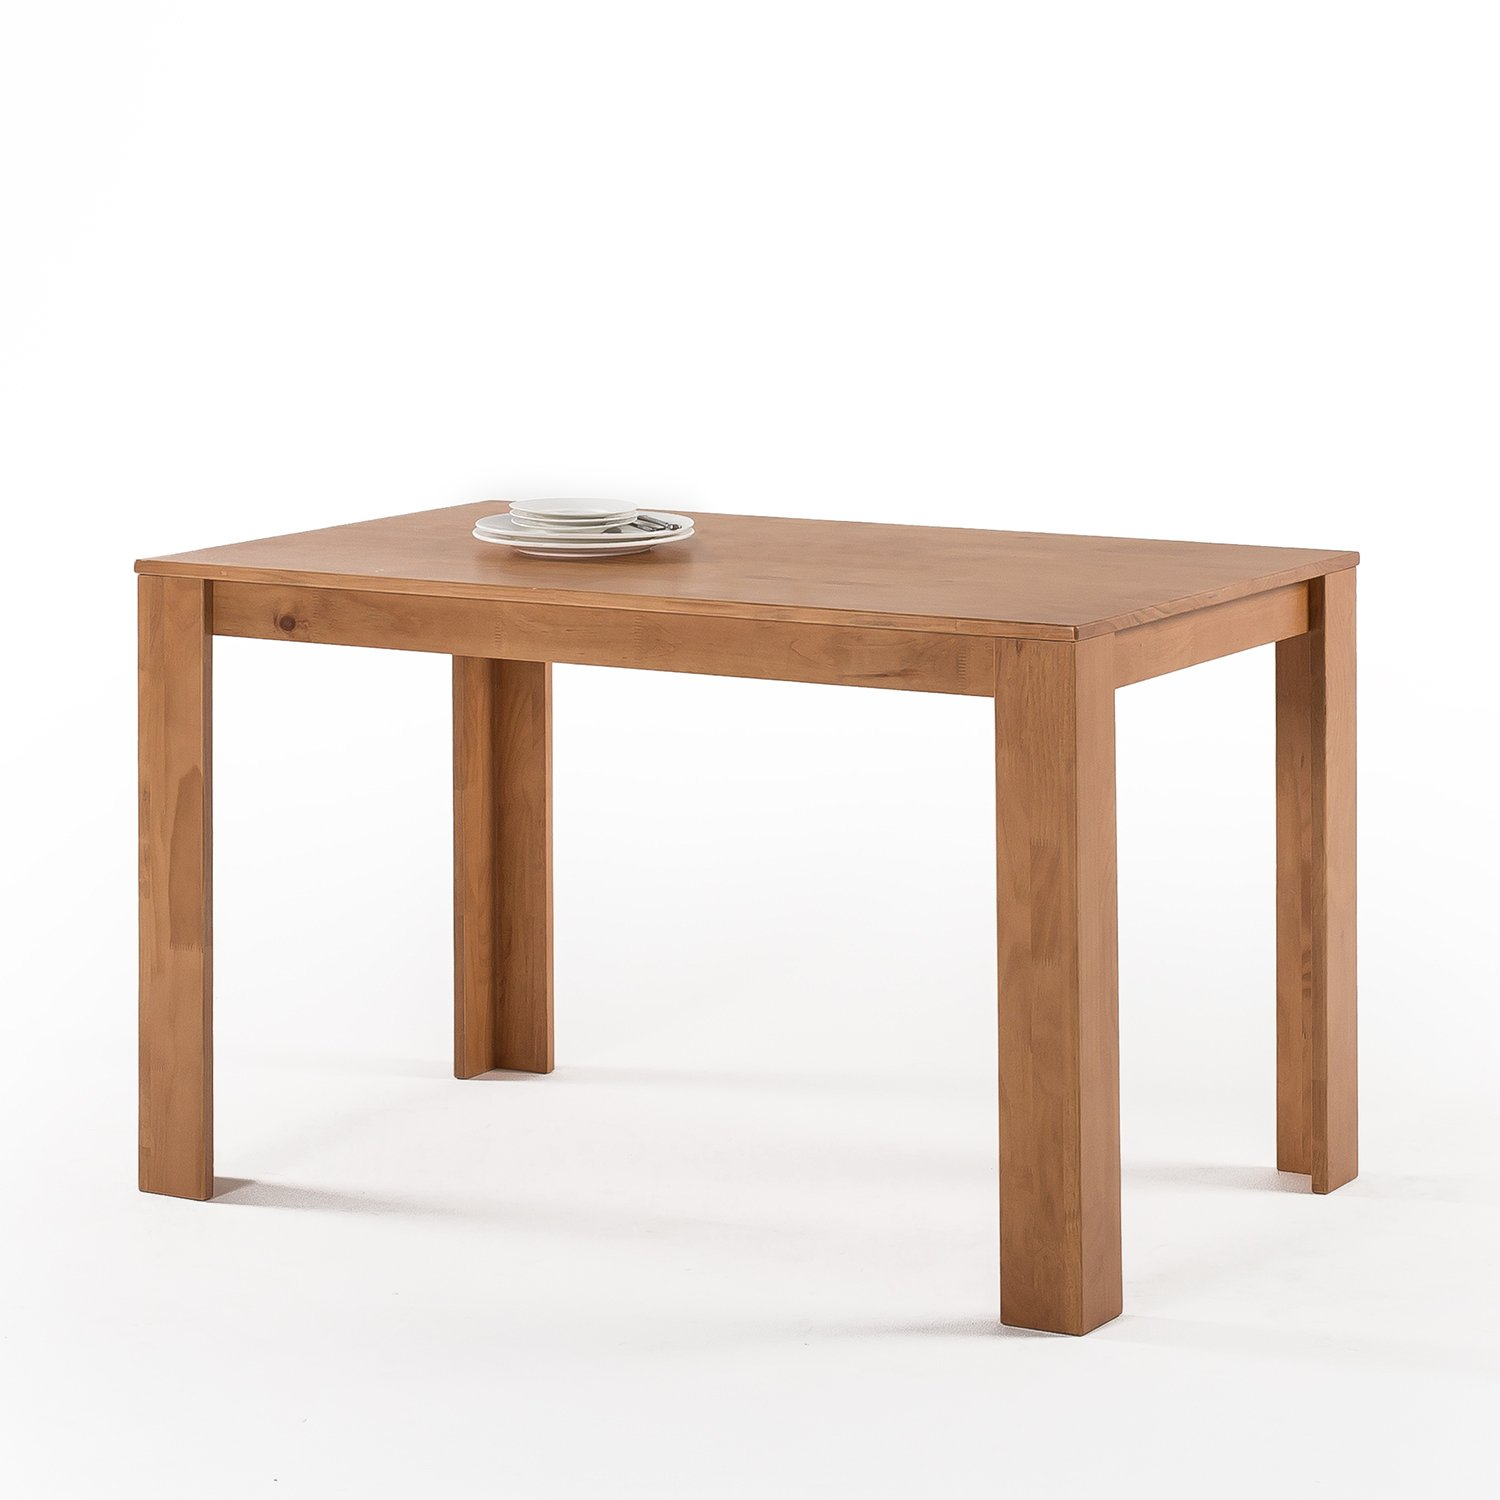 Zinus Vialeta Mission Style Wood Dining Table / Table Only, Natural by Zinus